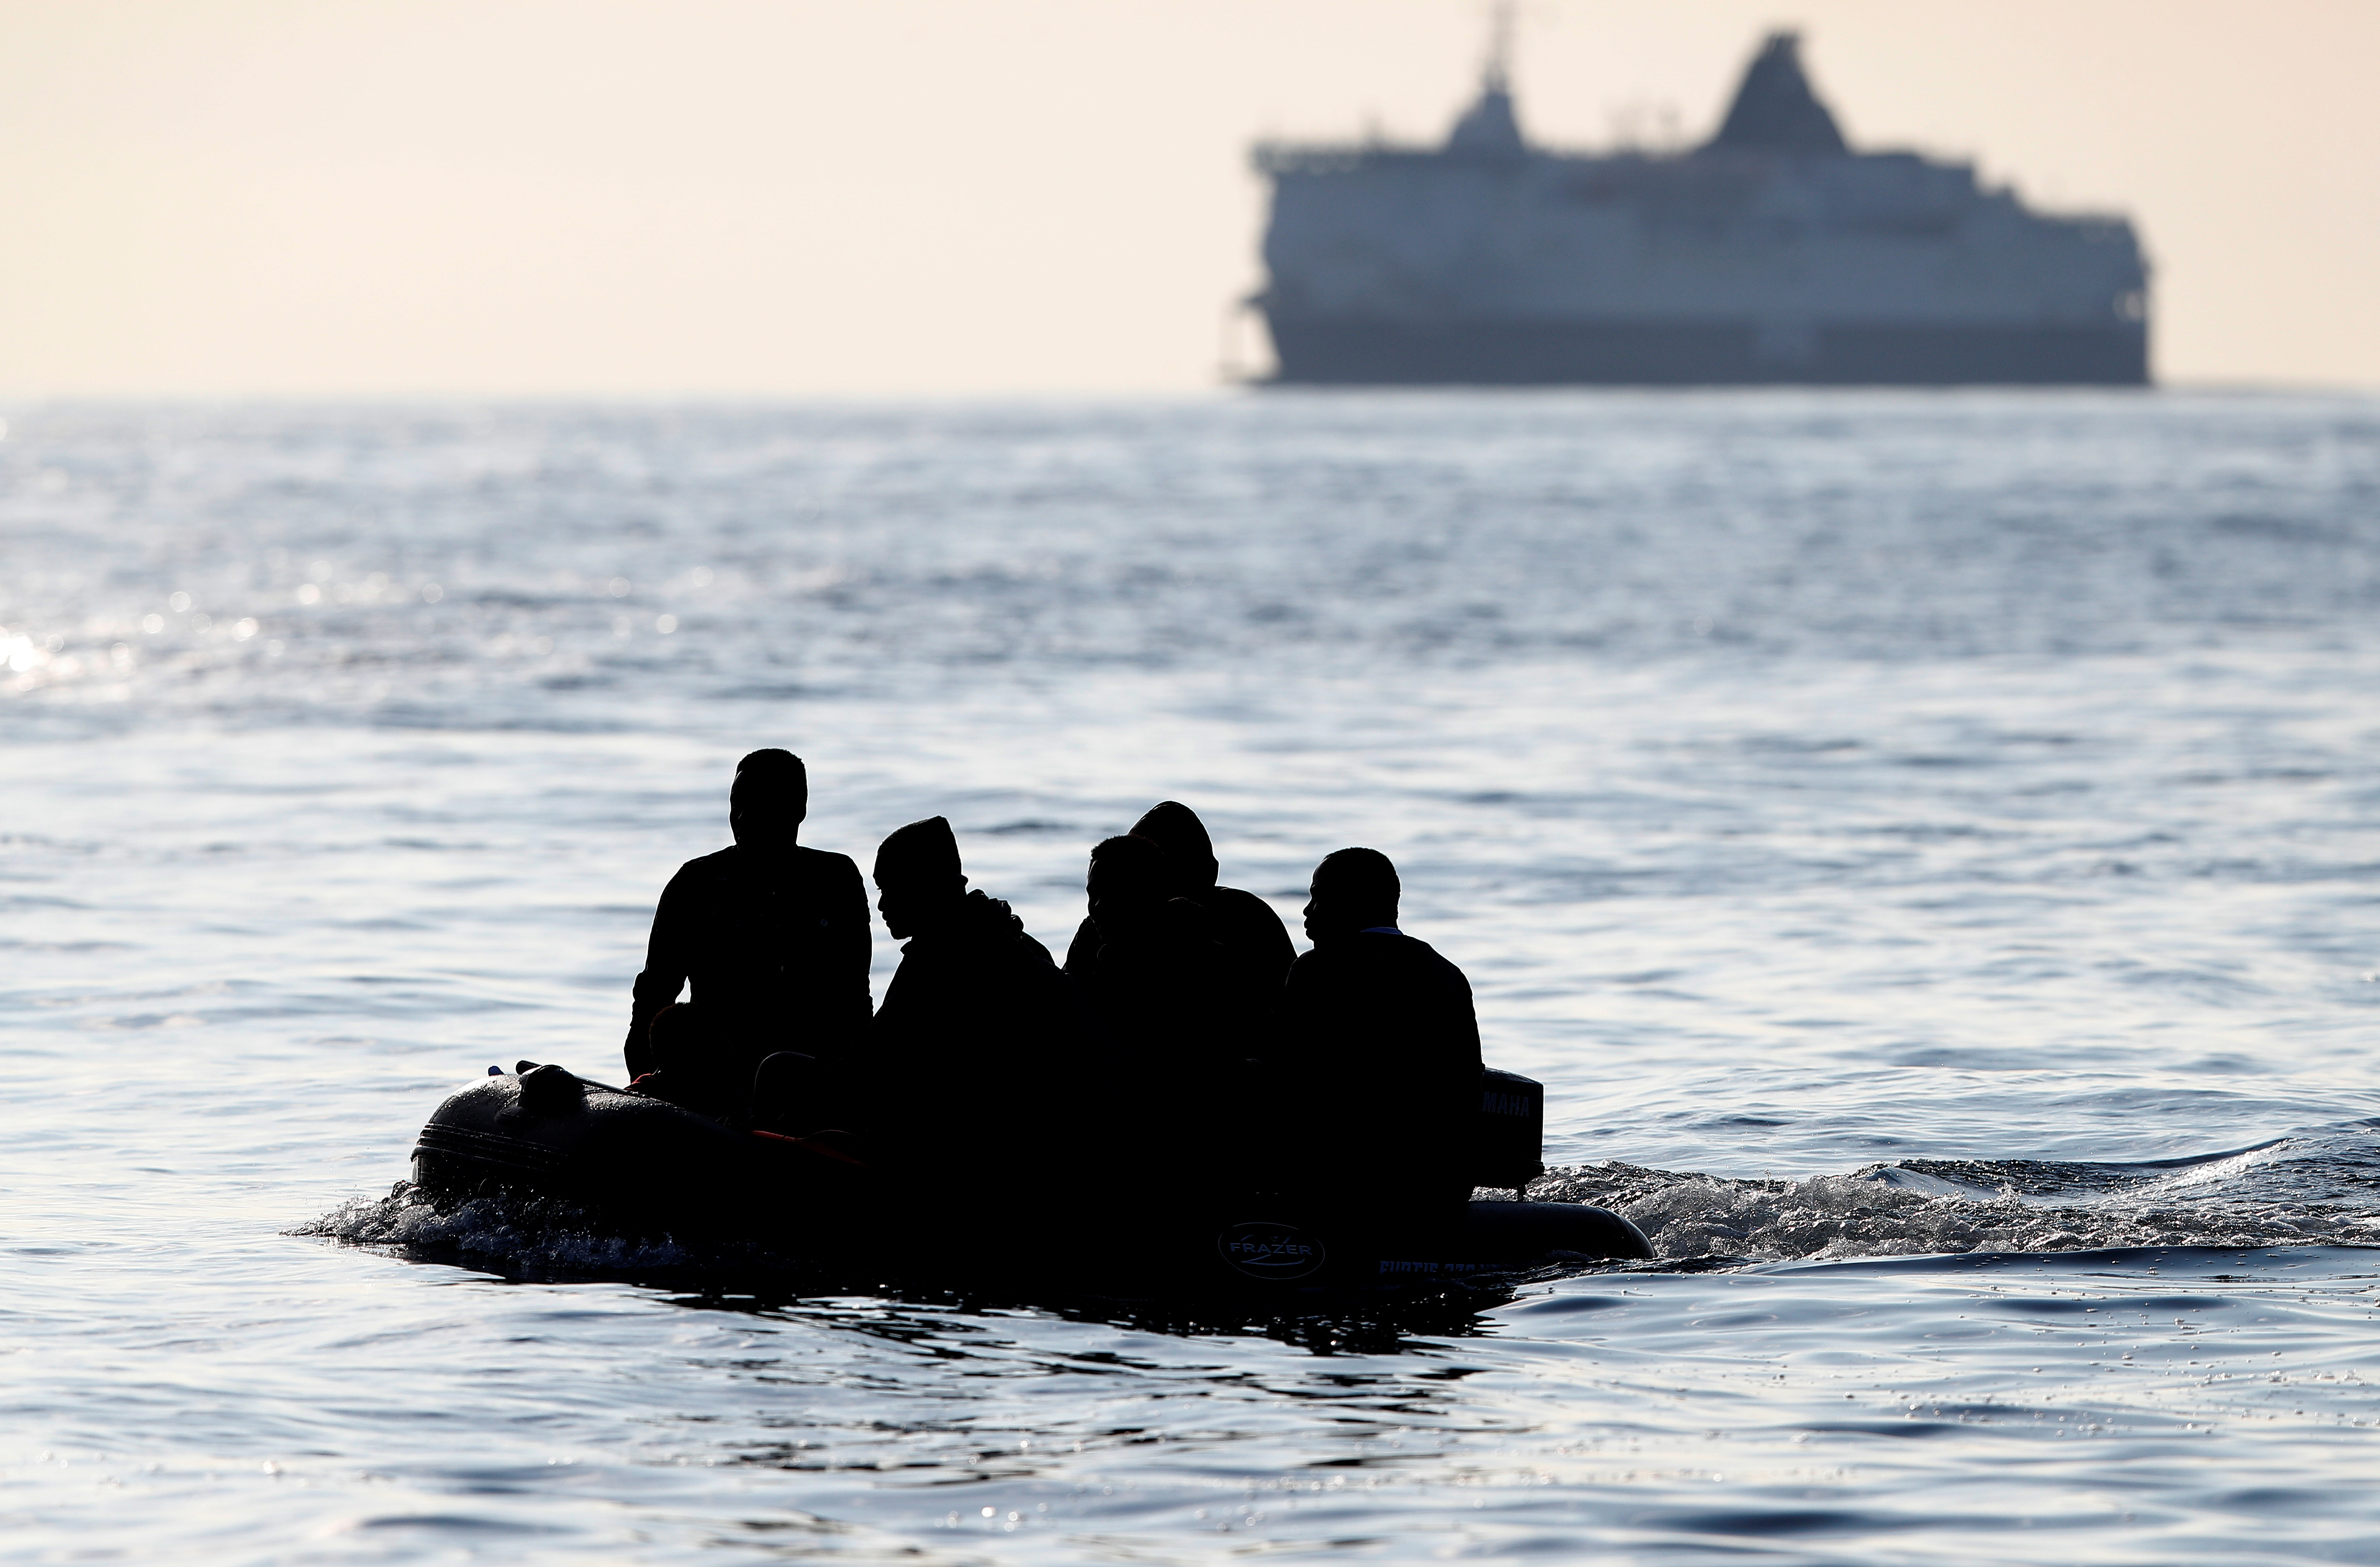 Migrants claiming to be from Darfur, Sudan cross the English Channel in an inflatable boat near Dover, Britain, August 4, 2021. Picture taken August 4, 2021.  REUTERS/Peter Nicholls